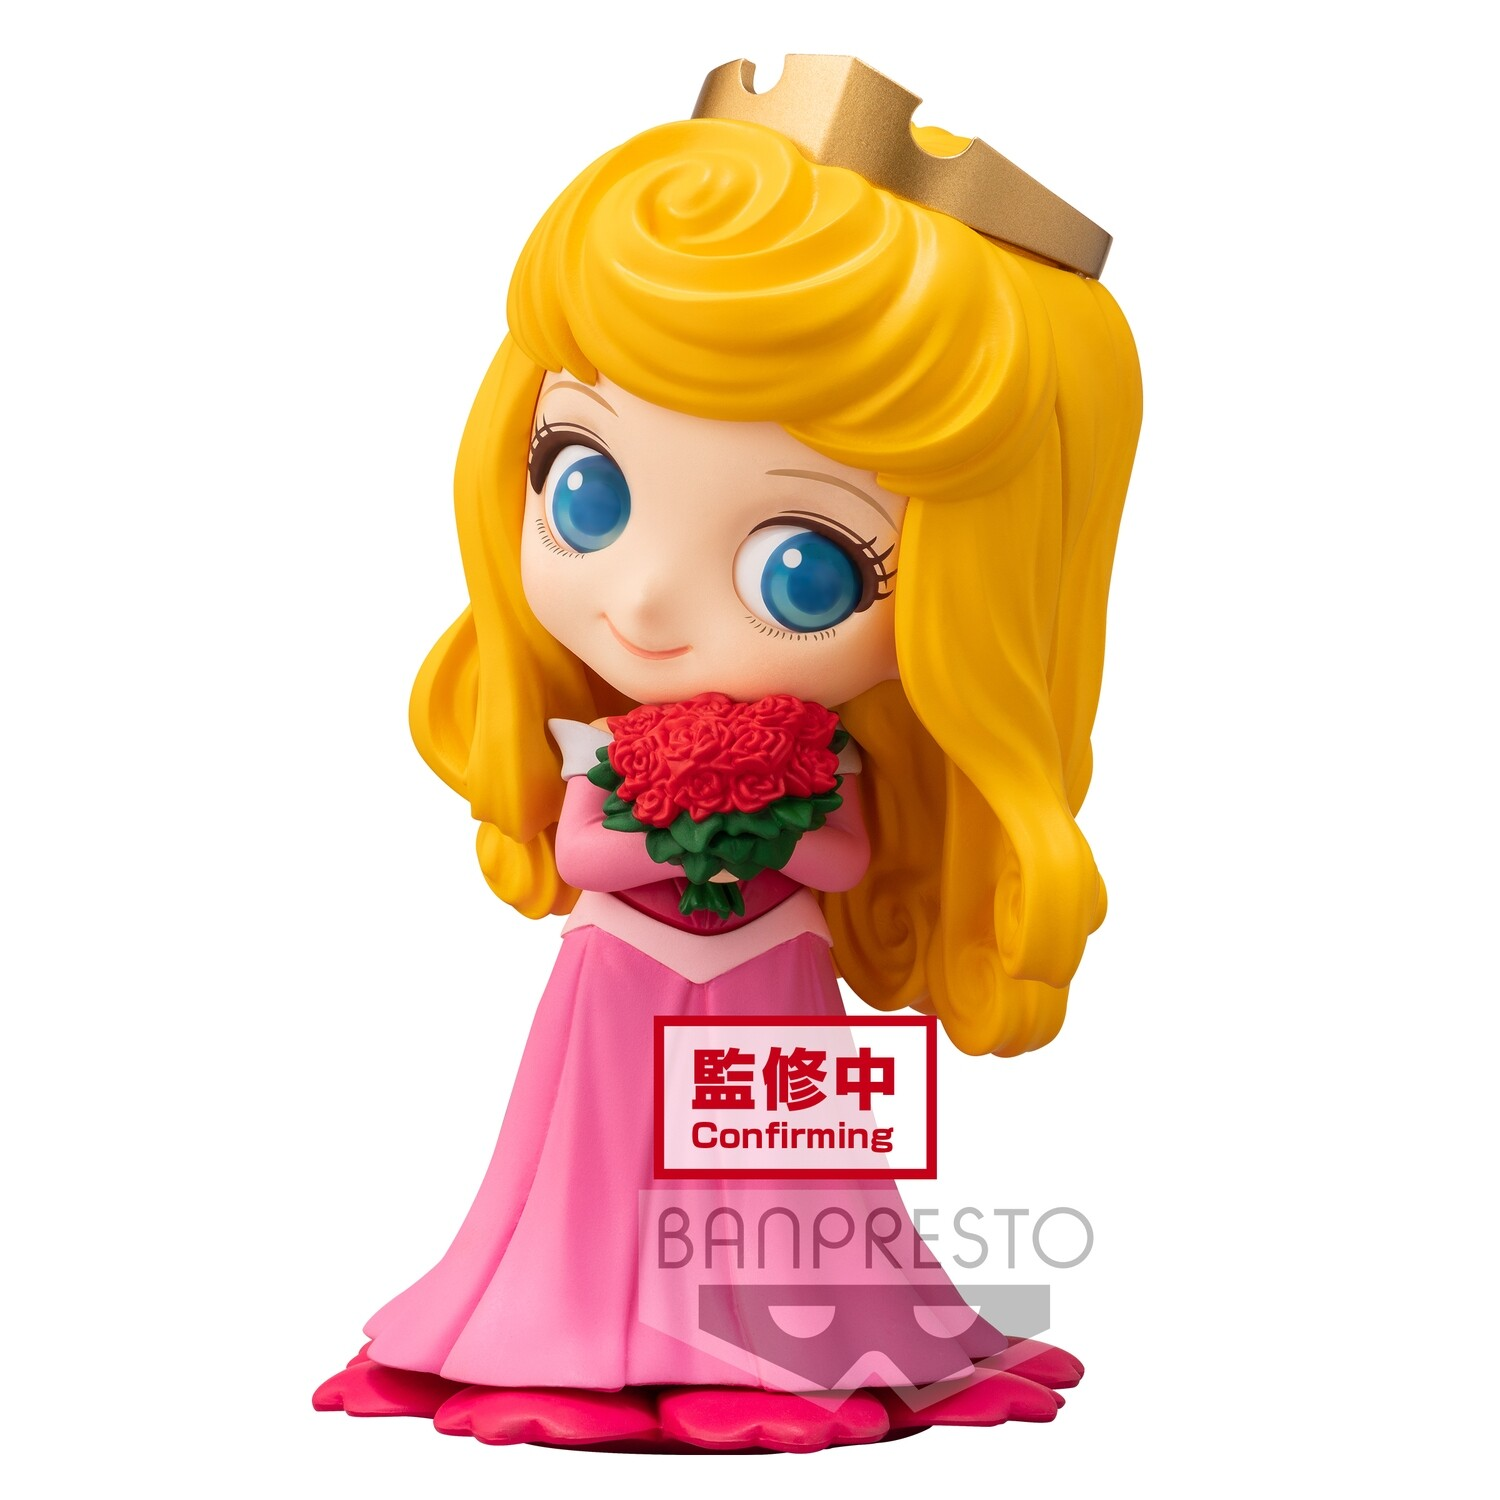 Sweetiny Disney Characters Princess Aurora Ver. A